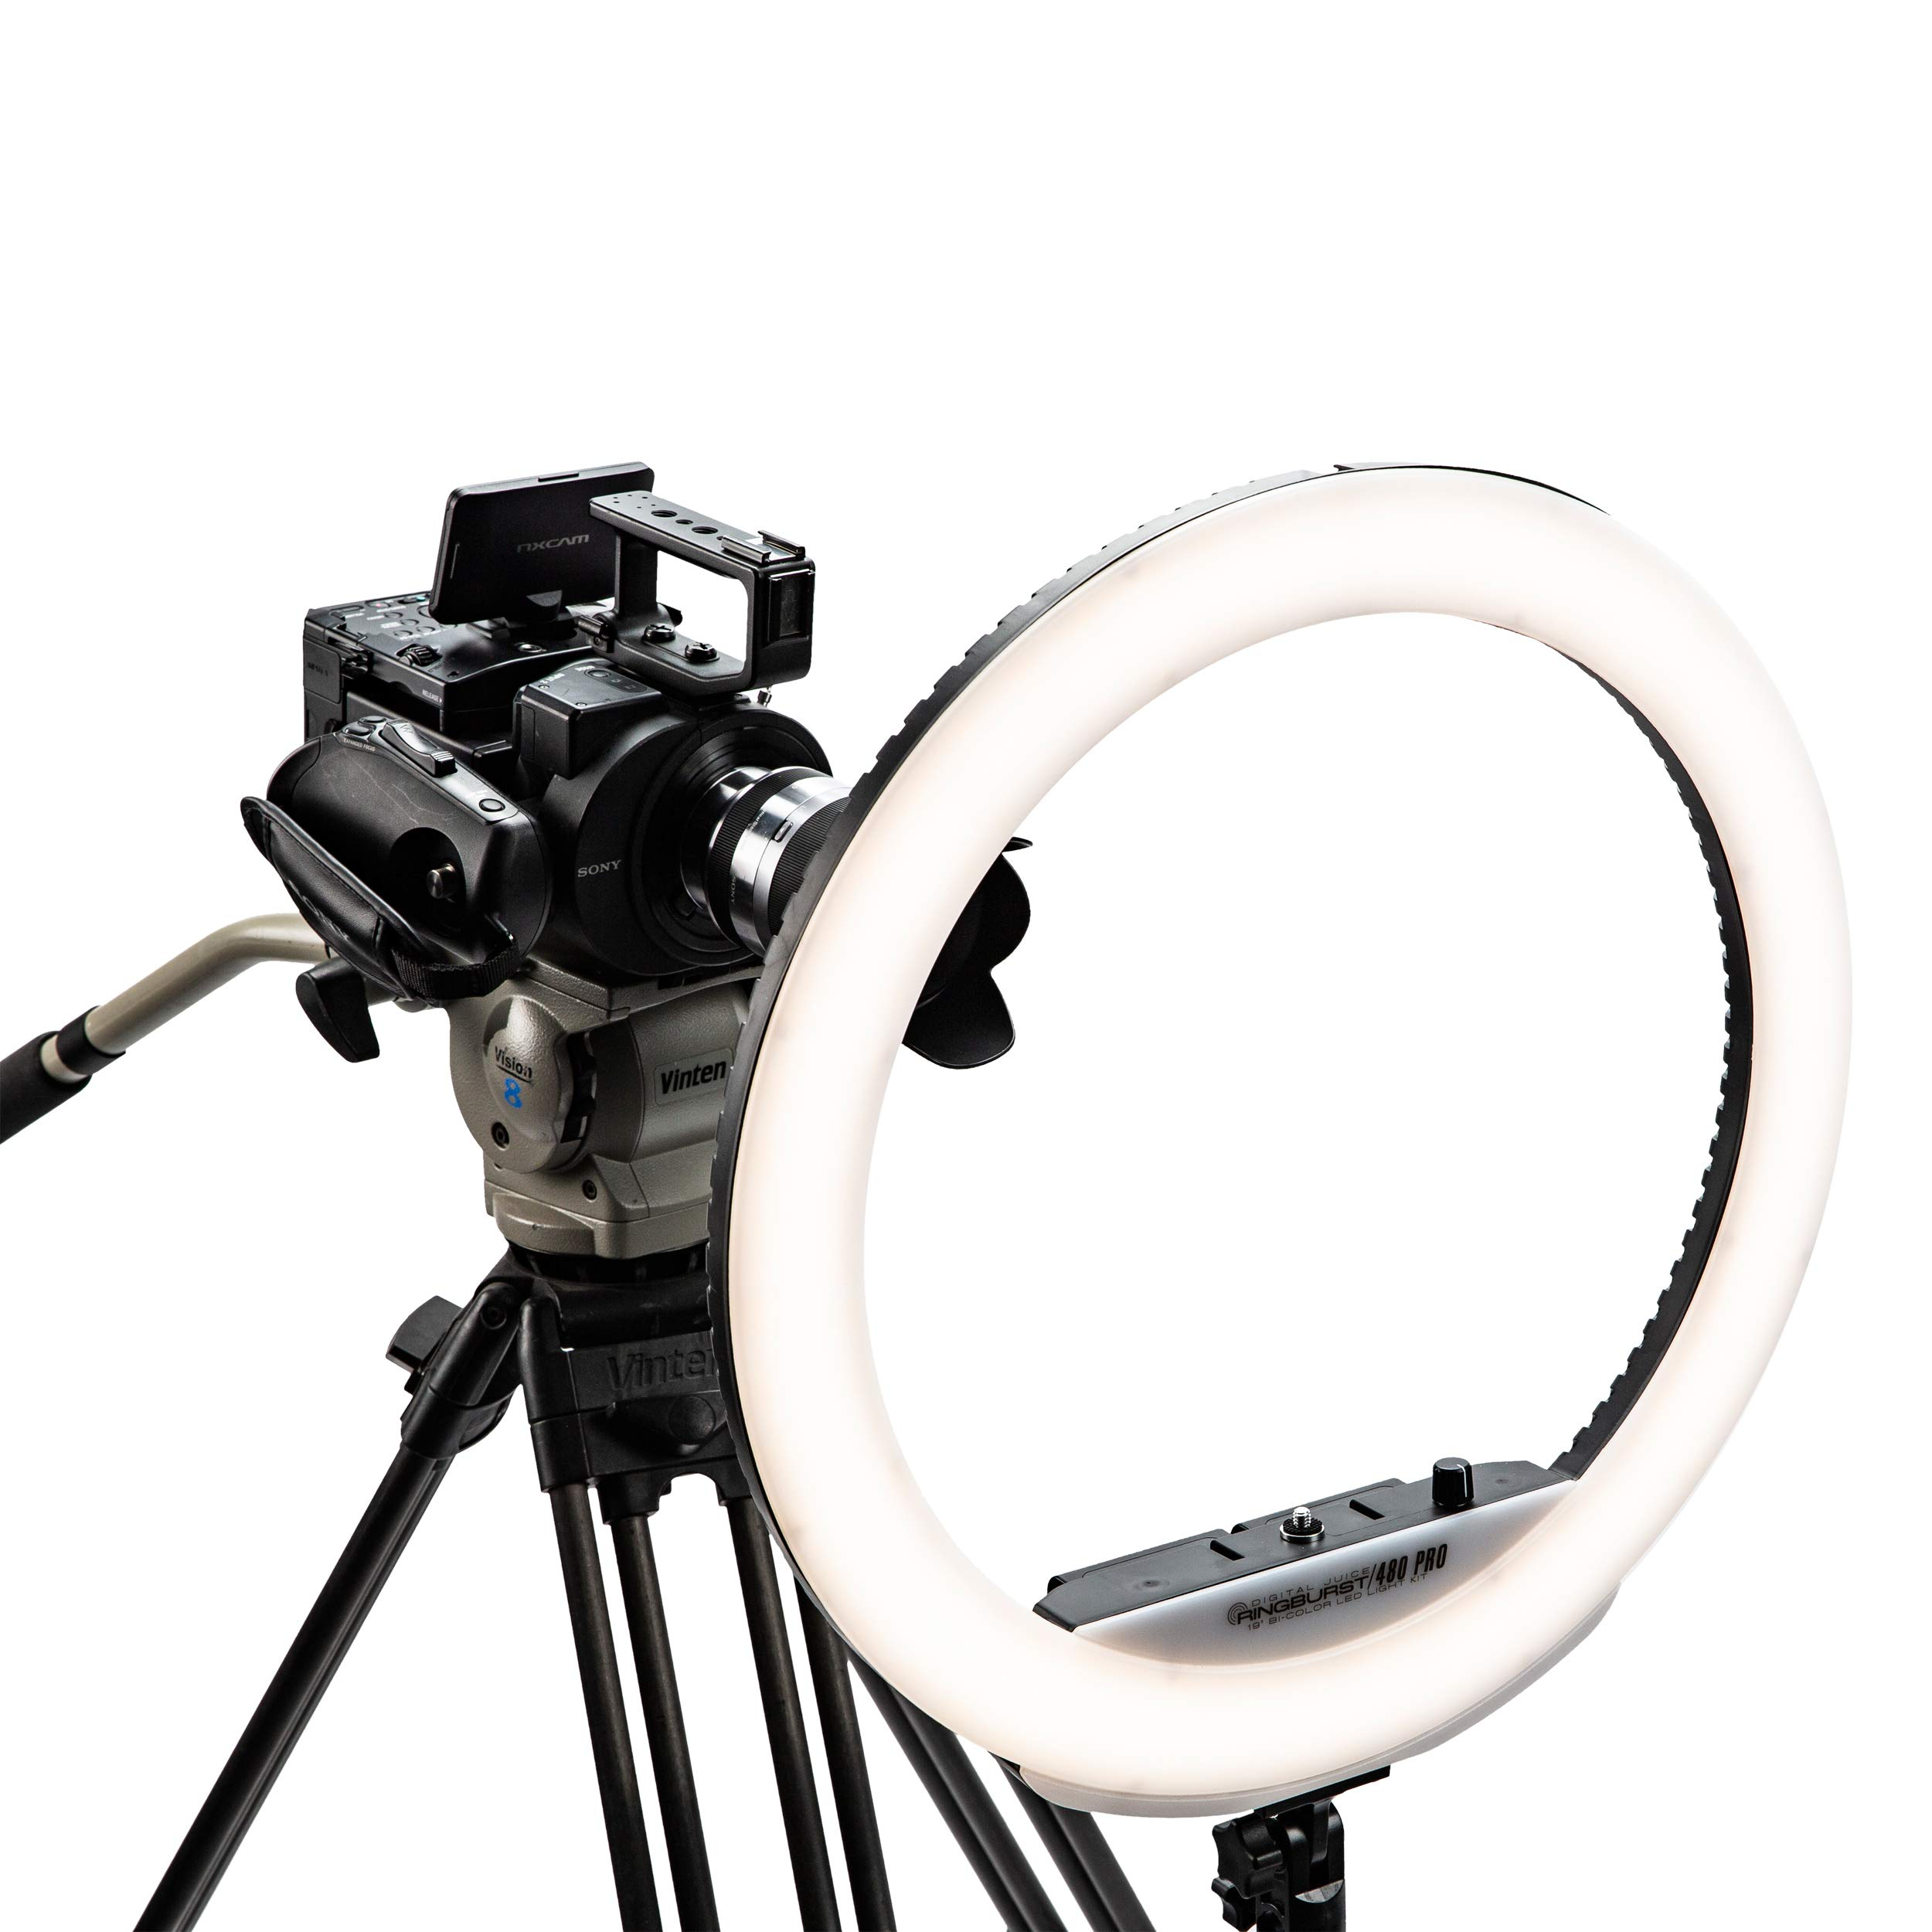 Digital Juice RingBurst 480 PRO - Affordable Bi-Color LED Ring Light: 19 Inch, 55W, 5600K Color Temperature, Dimmable Photo Studio Lighting Kit for Makeup Tutorials, YouTube, Vimeo, Vine Shooting by Digital Juice